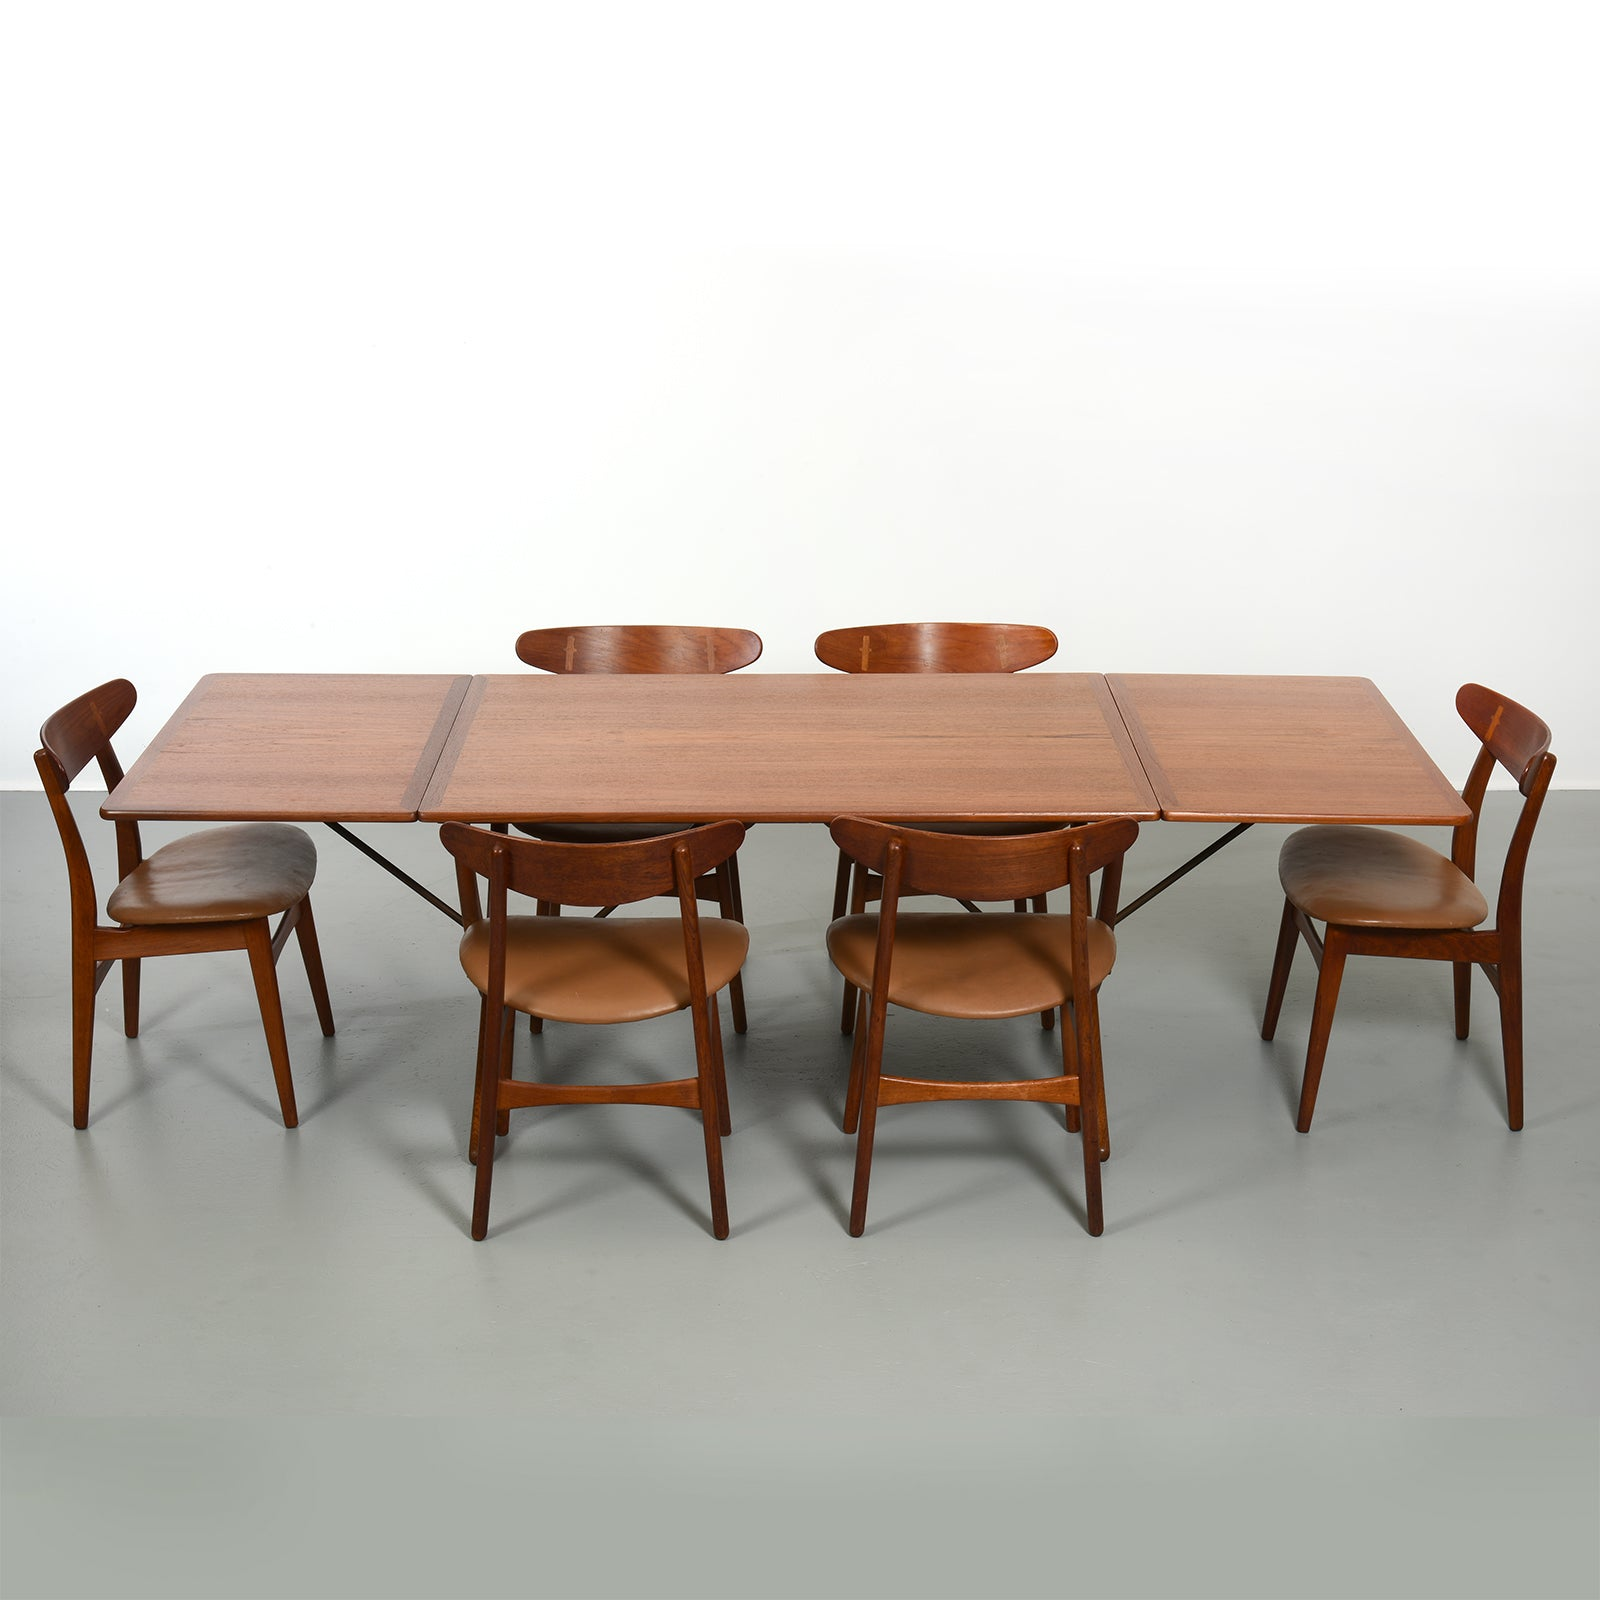 Hans Wegner Dining Table Set Model AT304 with Six Chairs 1950s